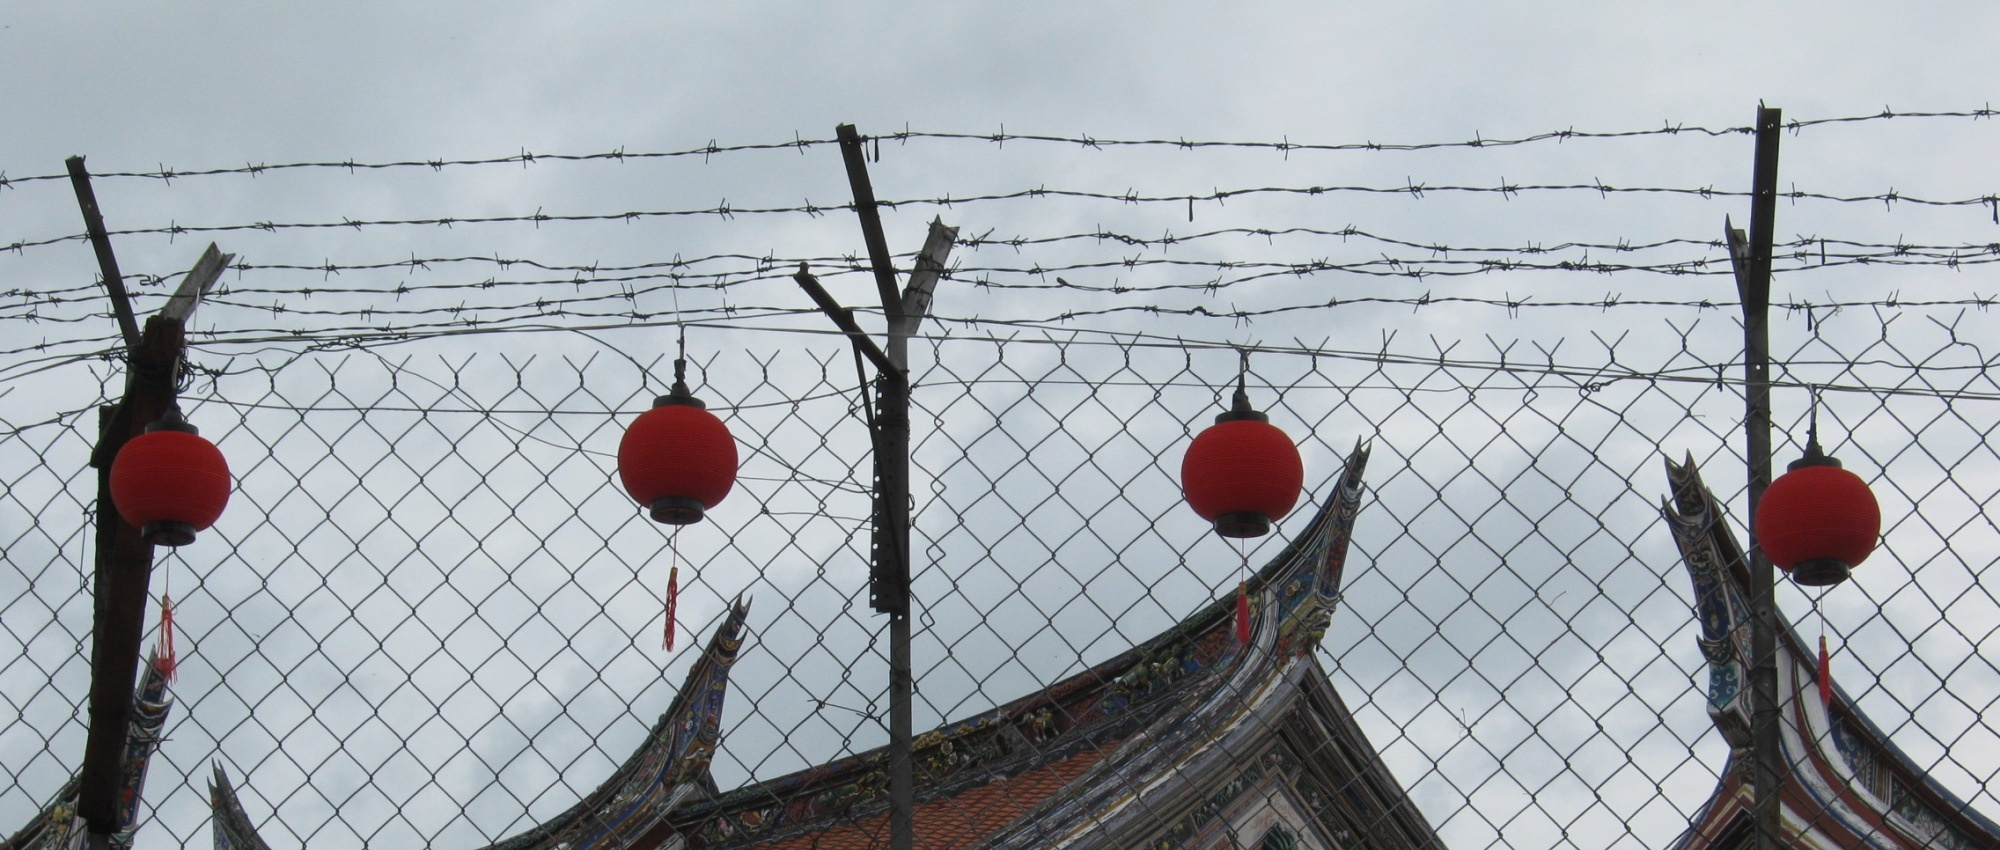 Red lanterns hanging on a barbed wire fence